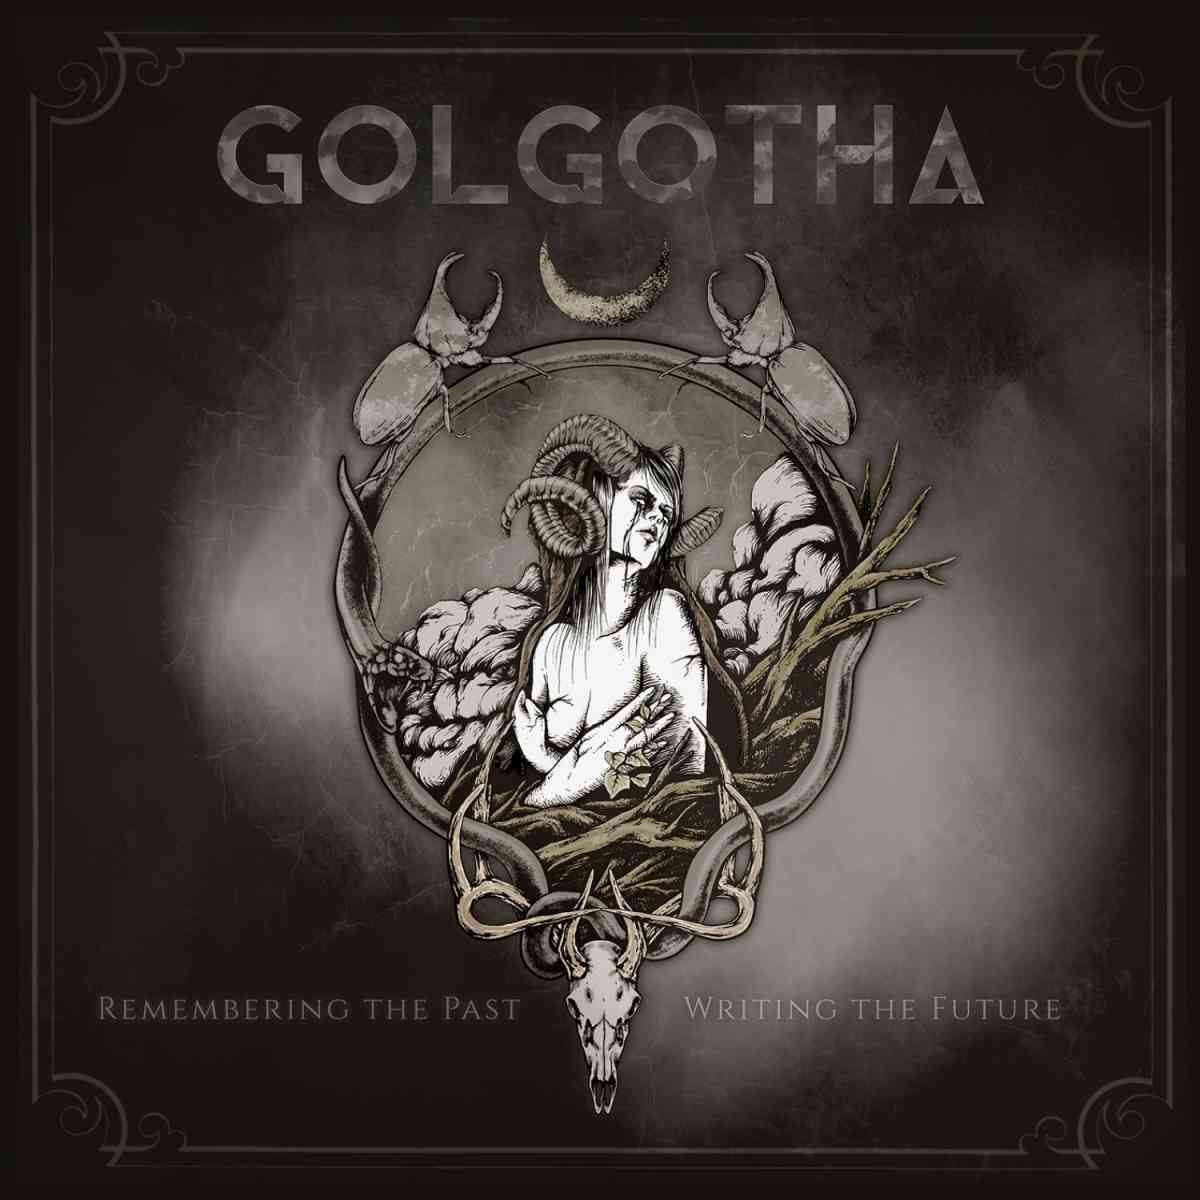 GOLGOTHA - Remembering the Past - Writing the Future - album cover